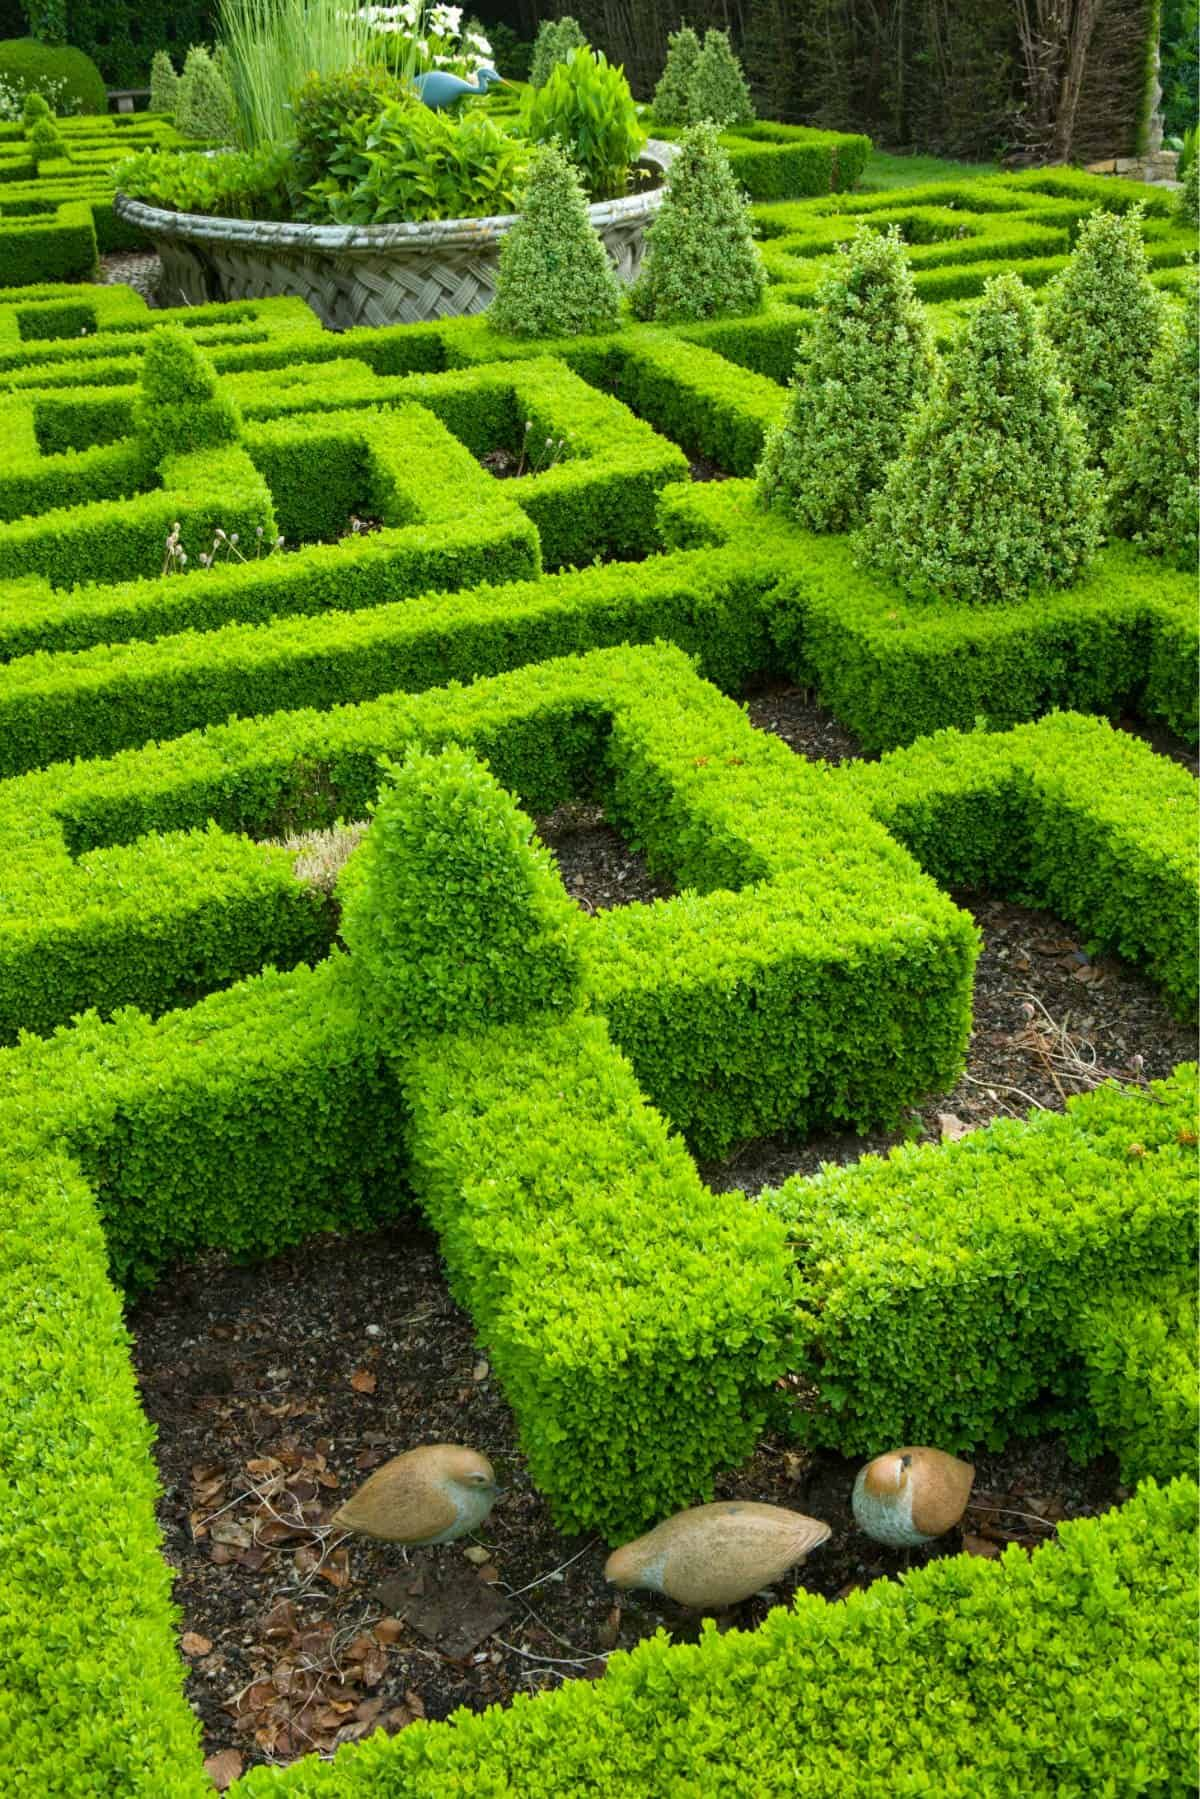 How To Build A Knot Garden 40 Photo Designs In 2020 Topiary Plants Charming Garden Planting Bulbs